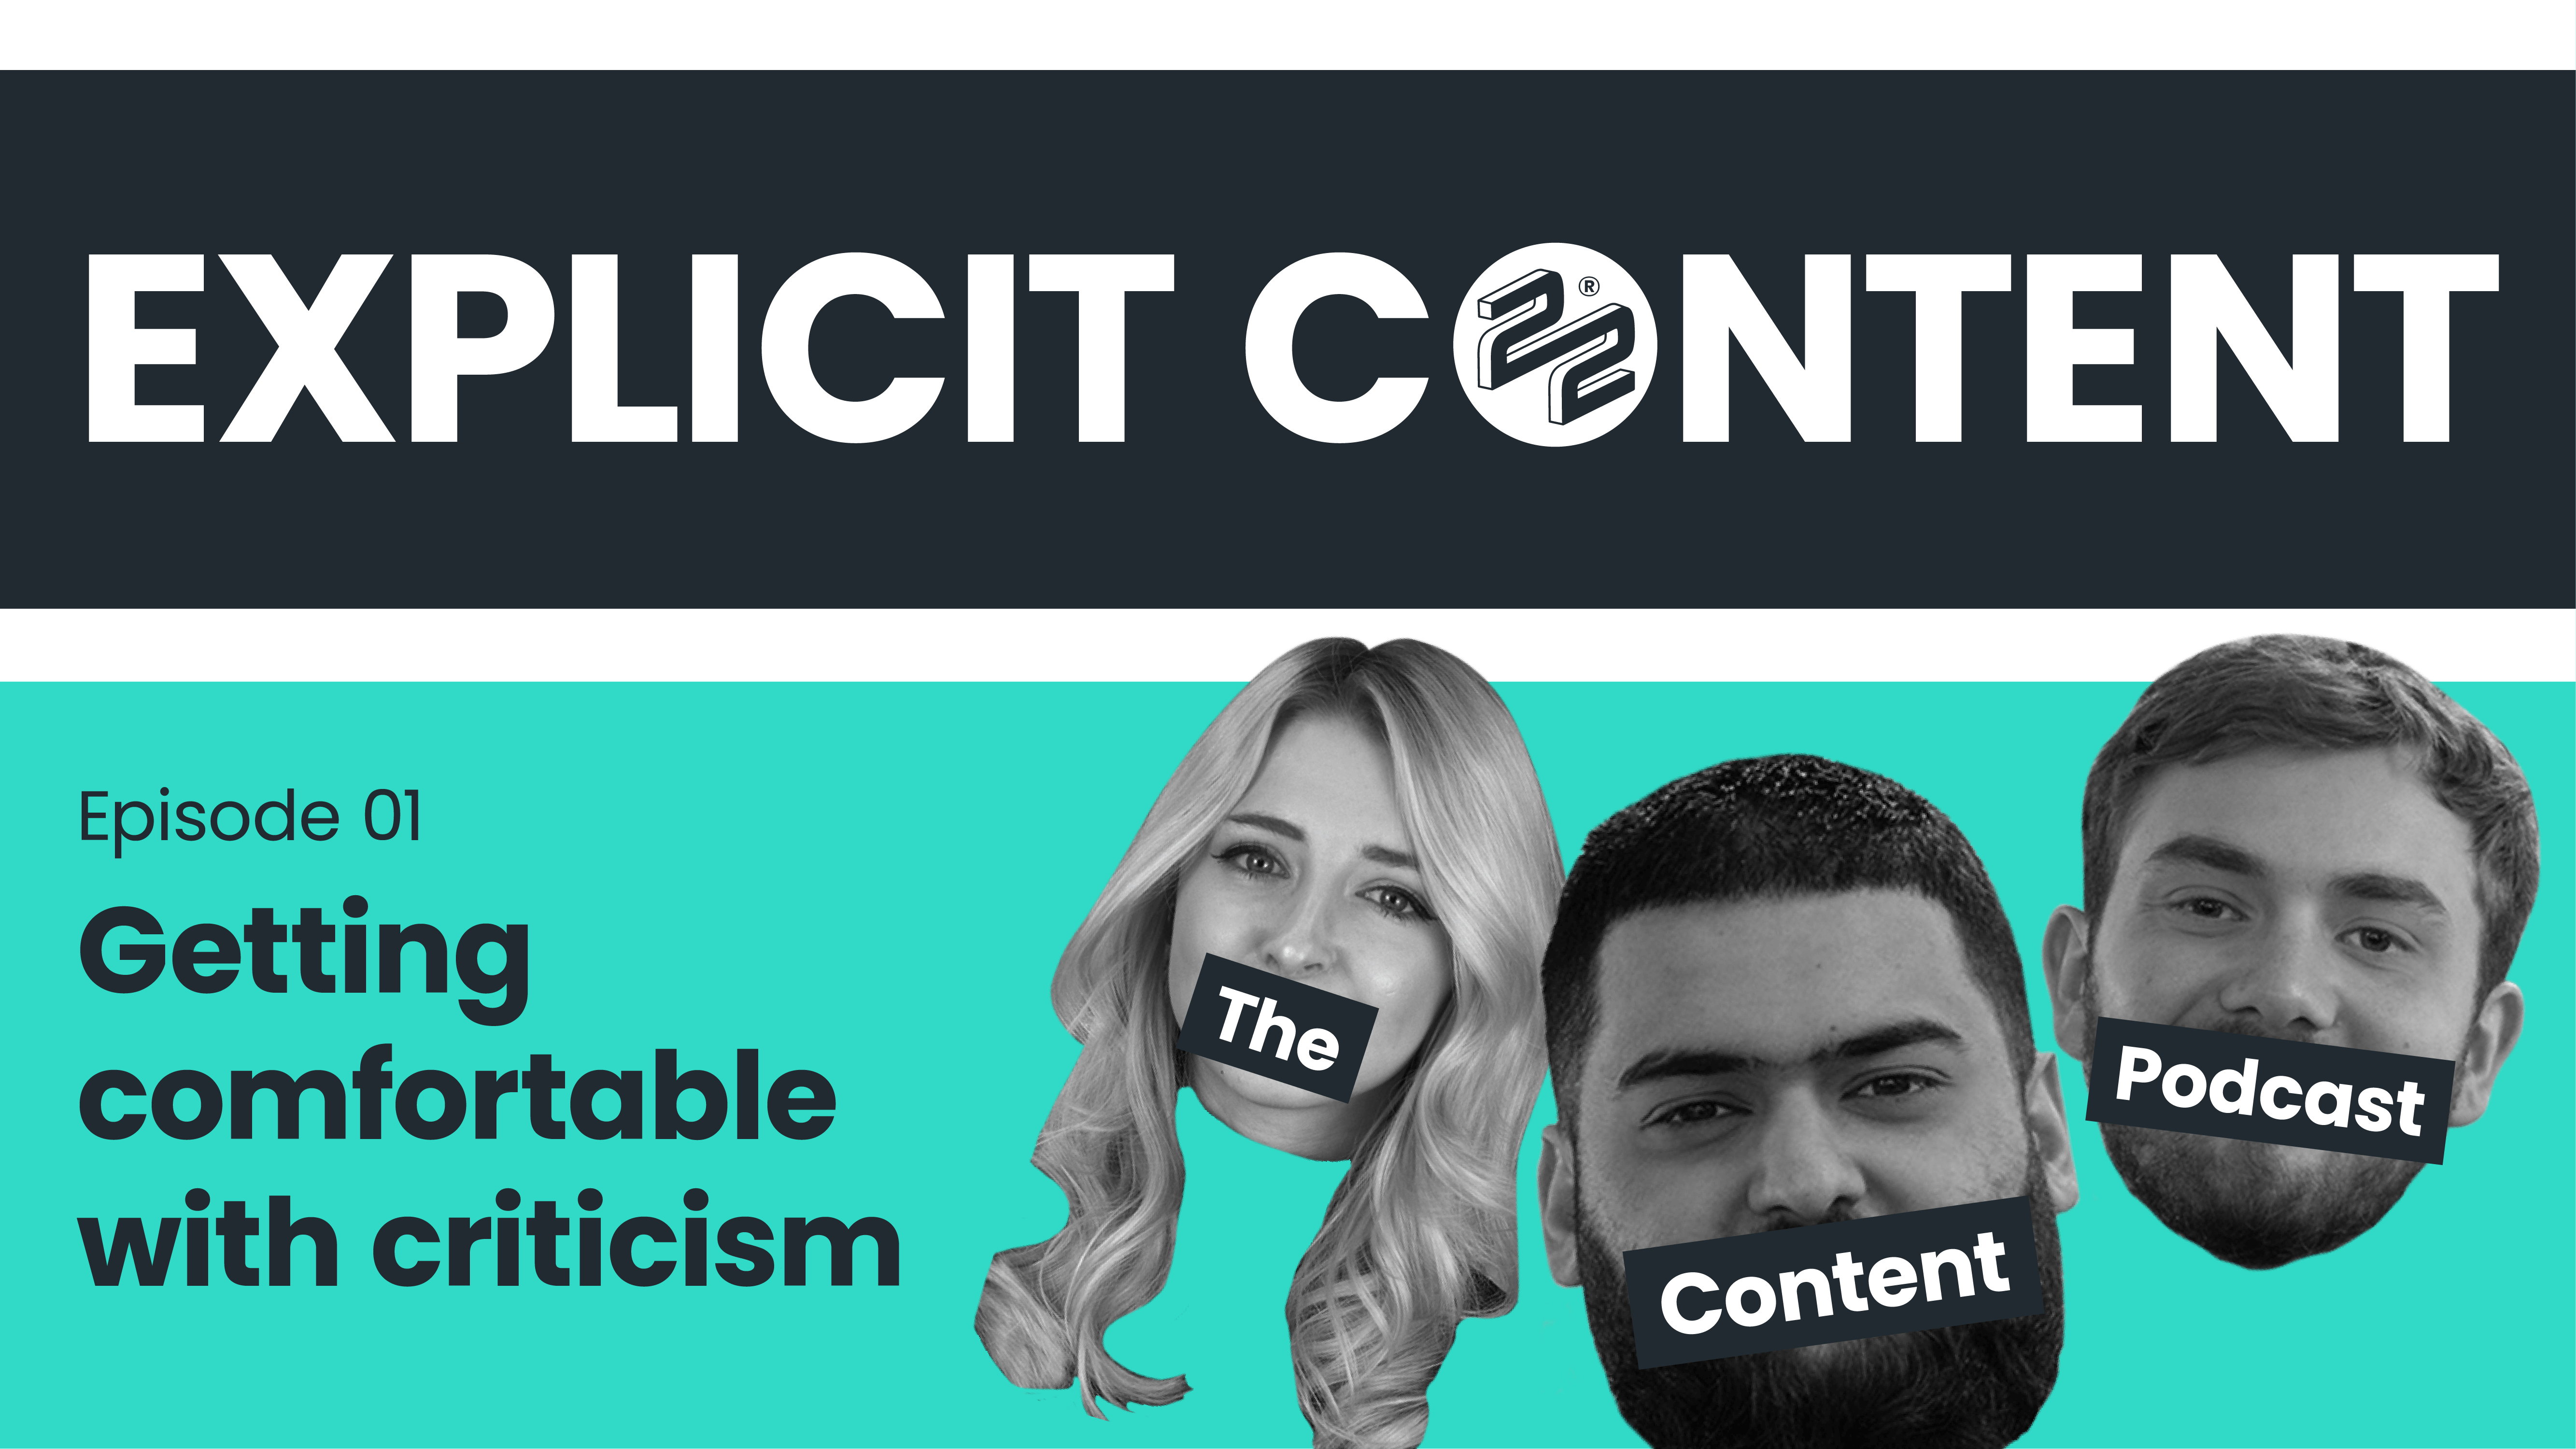 EXPLICIT CONTENT: Getting comfortable with criticism